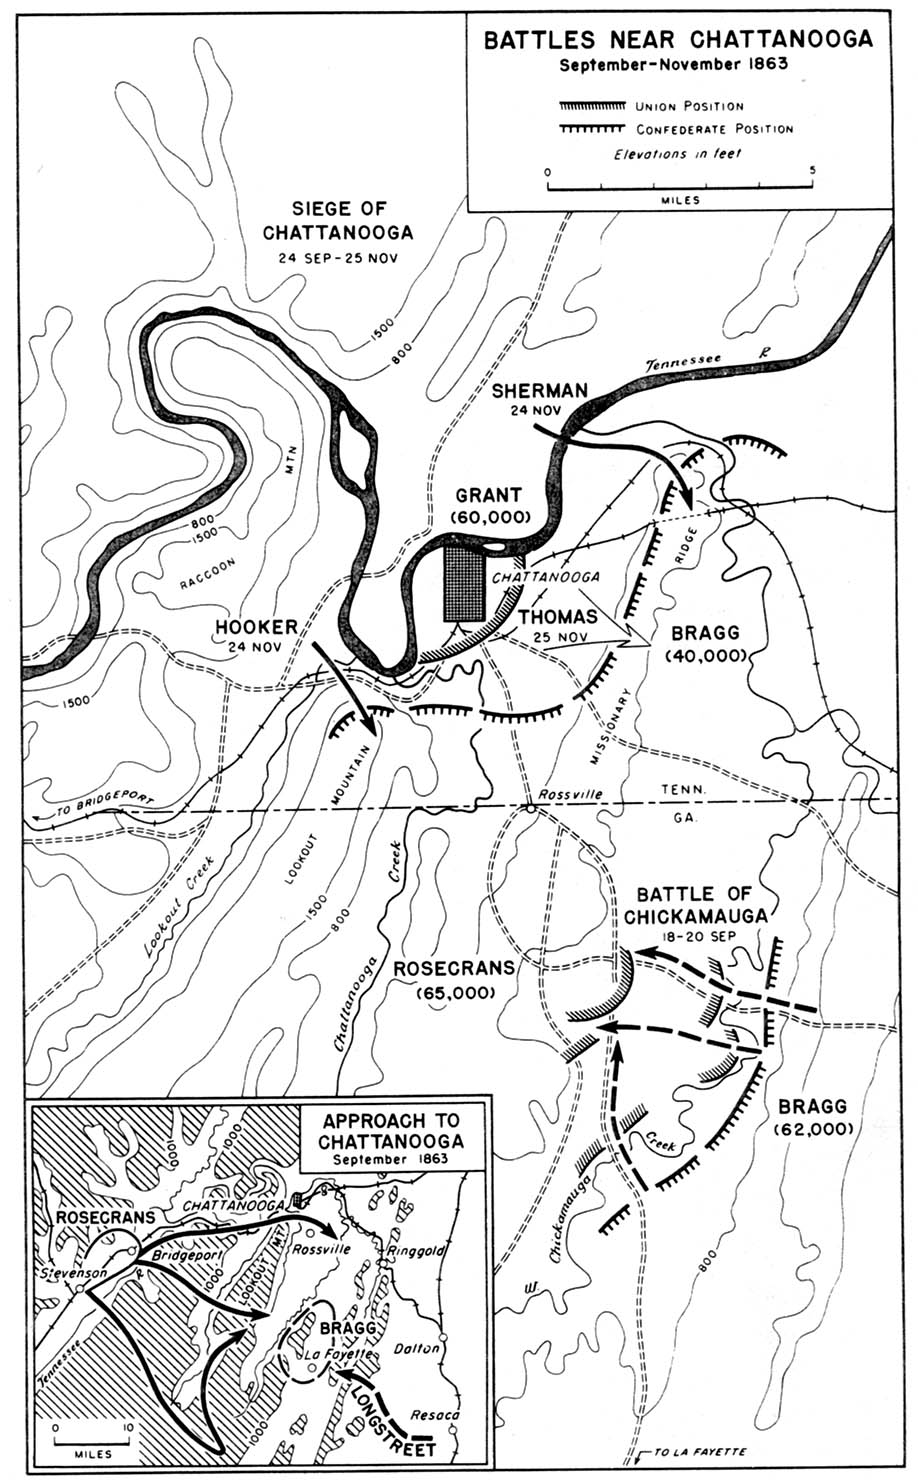 civil war battle coloring pages stones river | United States Historical Maps - Perry-Castañeda Map ...